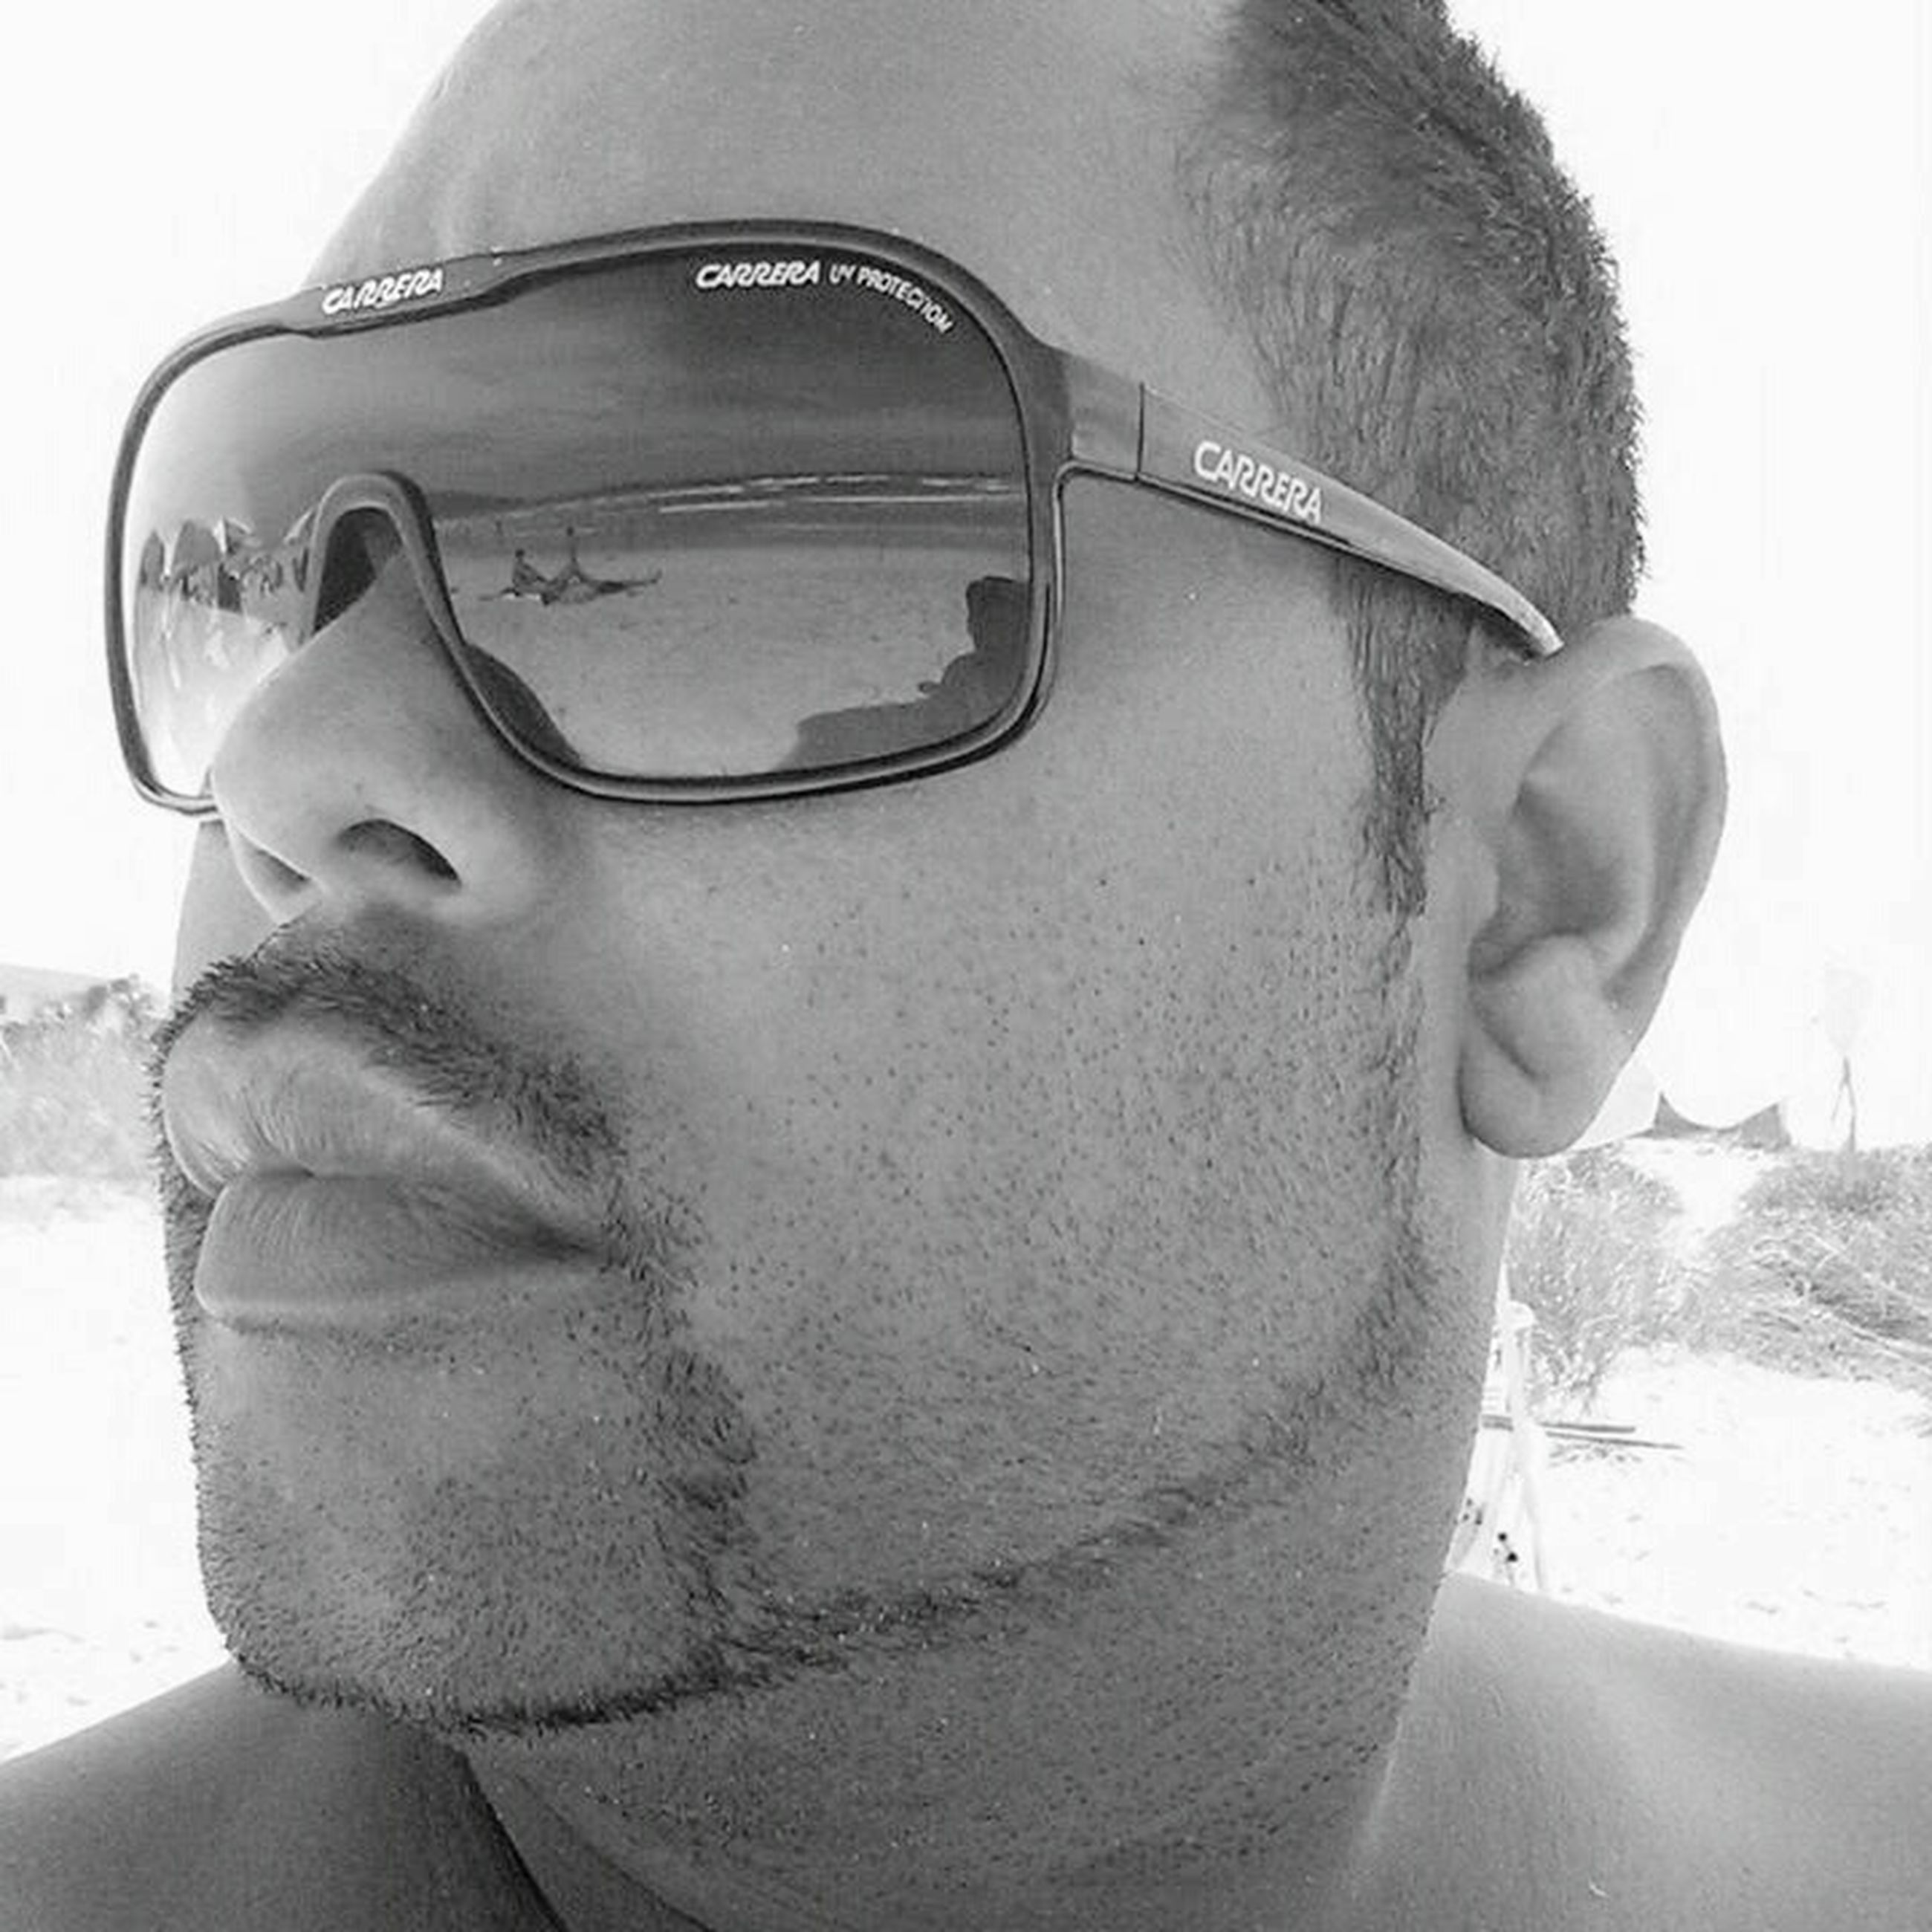 headshot, sunglasses, lifestyles, young men, leisure activity, person, young adult, front view, close-up, mid adult men, looking at camera, portrait, car, mid adult, focus on foreground, head and shoulders, day, winter